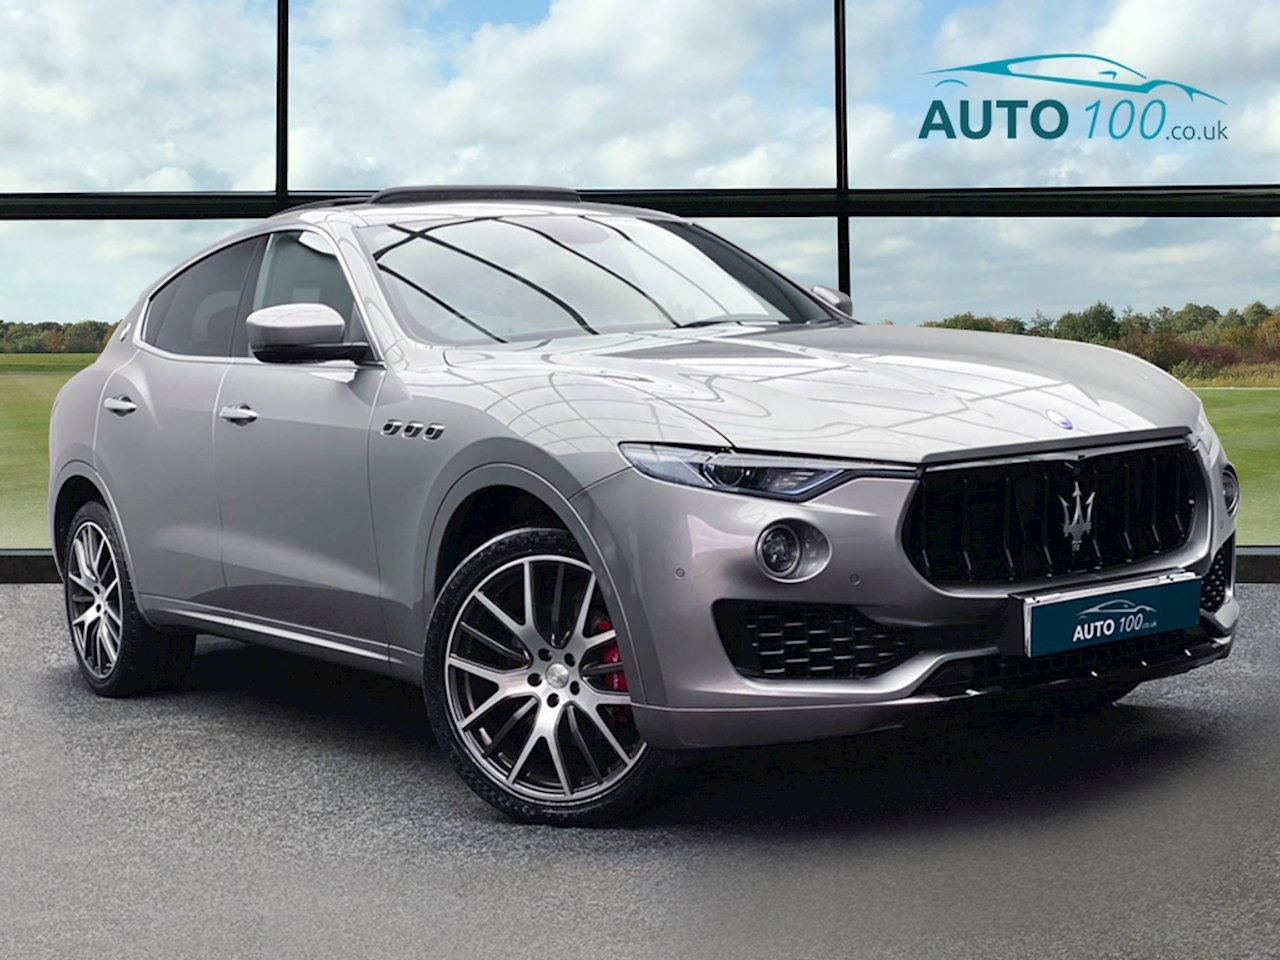 Maserati Levante 3.0D V6 SUV 5dr Diesel ZF 4WD (s/s) (275 ps) SUV 3.0 ZF Diesel